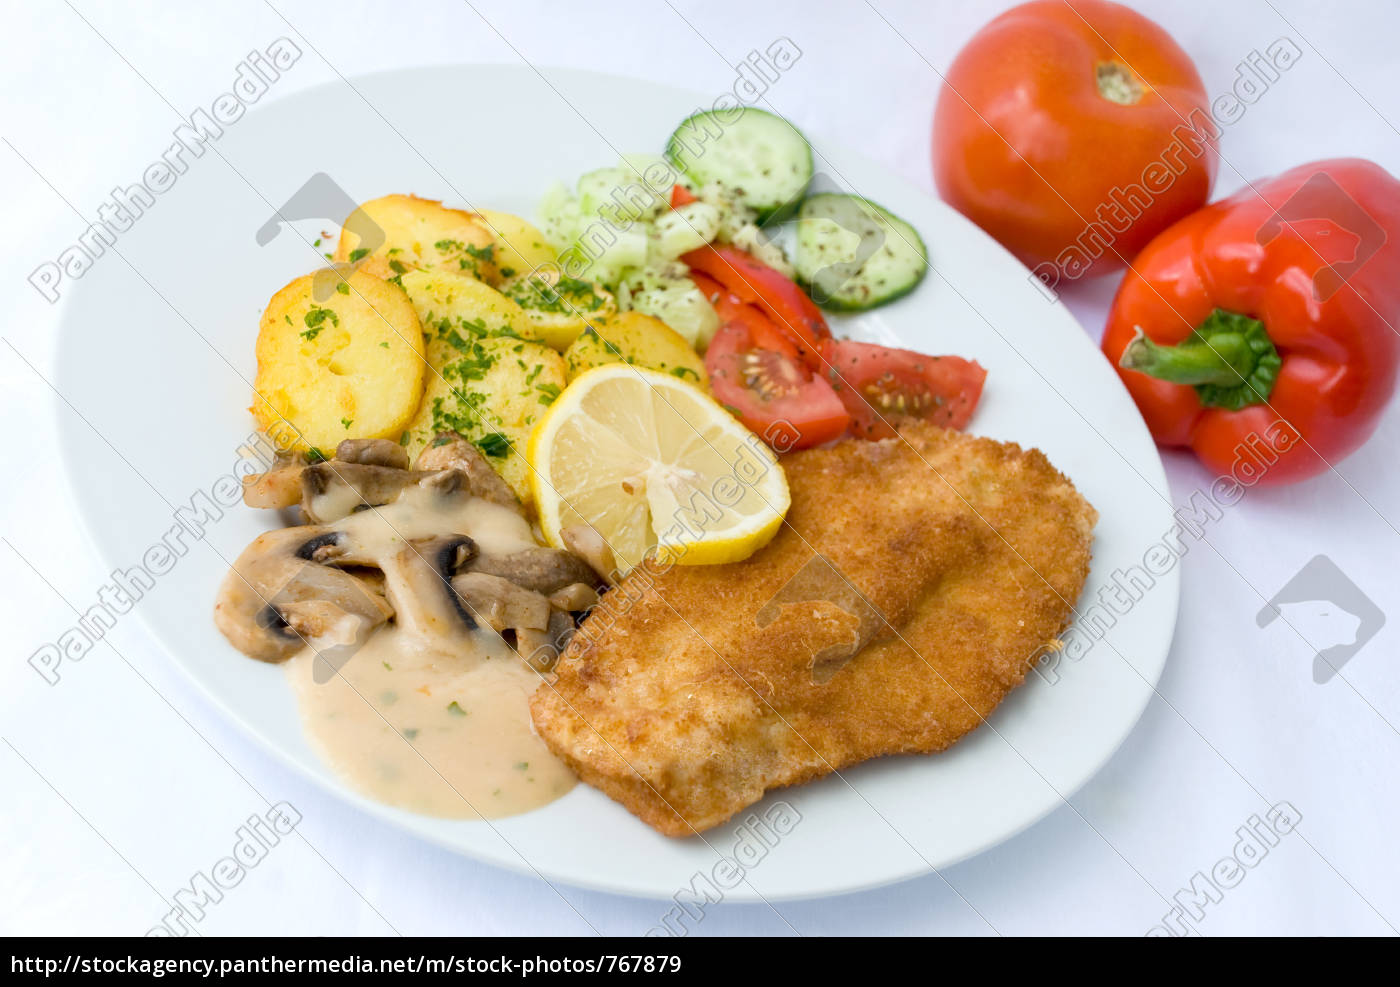 breaded, cutlet, with, salad, 9 - 767879